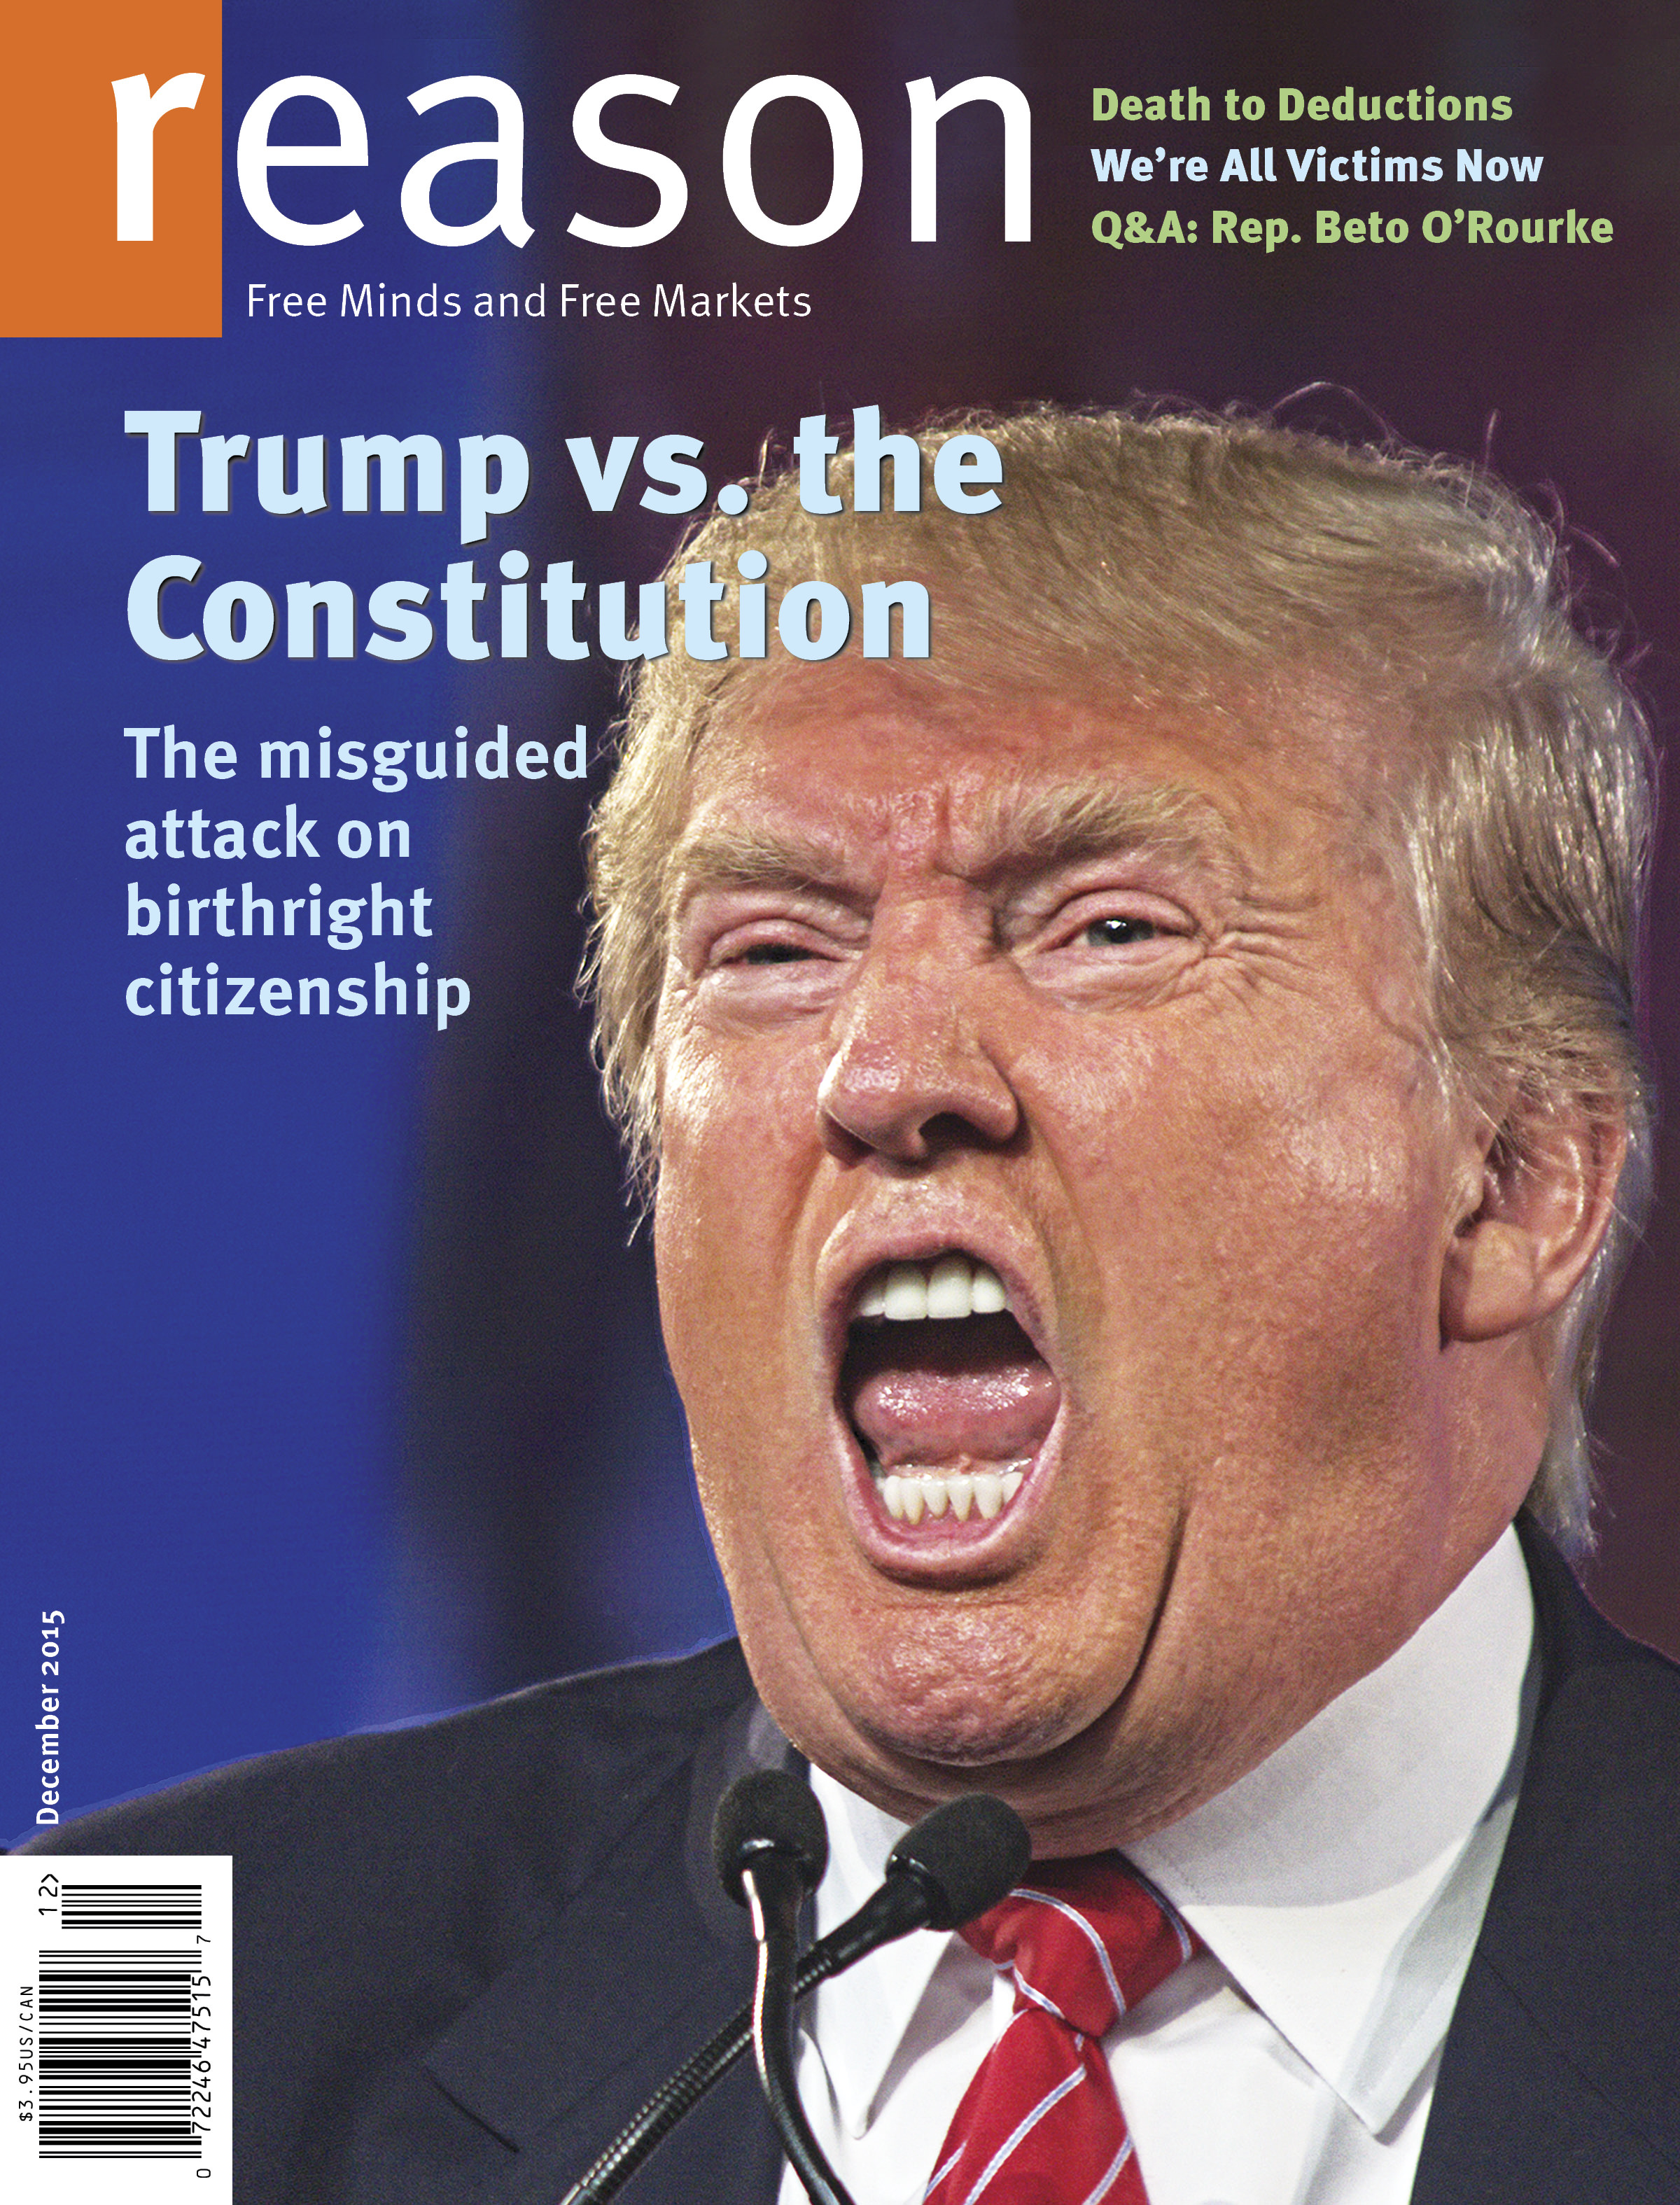 Reason Magazine, December 2015 cover image